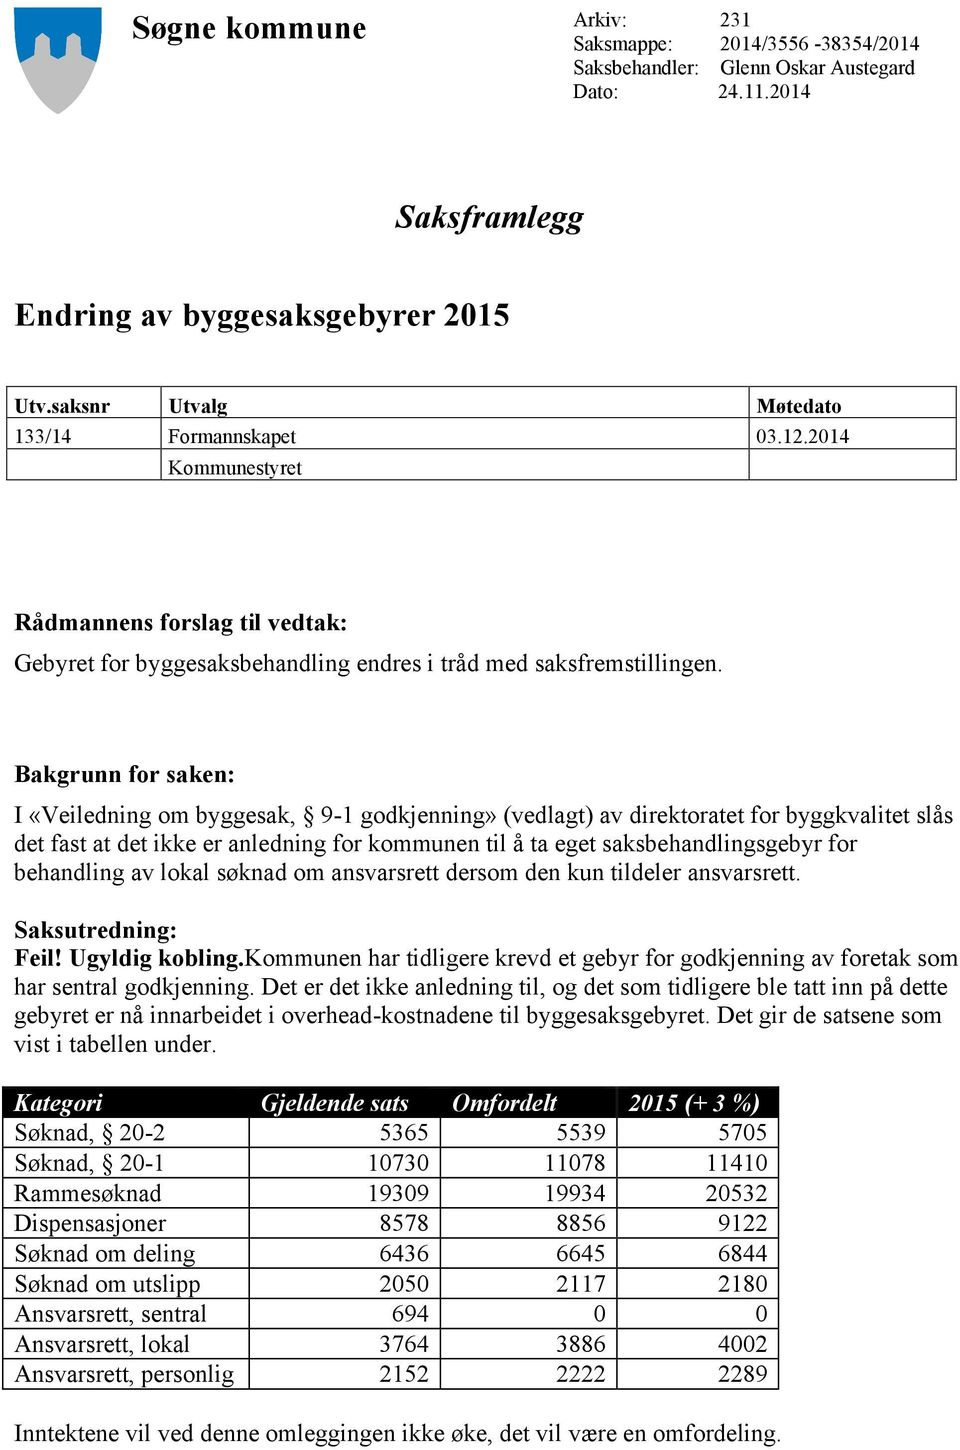 Bakgrunn for saken: I «Veiledning om byggesak, 9-1 godkjenning» (vedlagt) av direktoratet for byggkvalitet slås det fast at det ikke er anledning for kommunen til å ta eget saksbehandlingsgebyr for